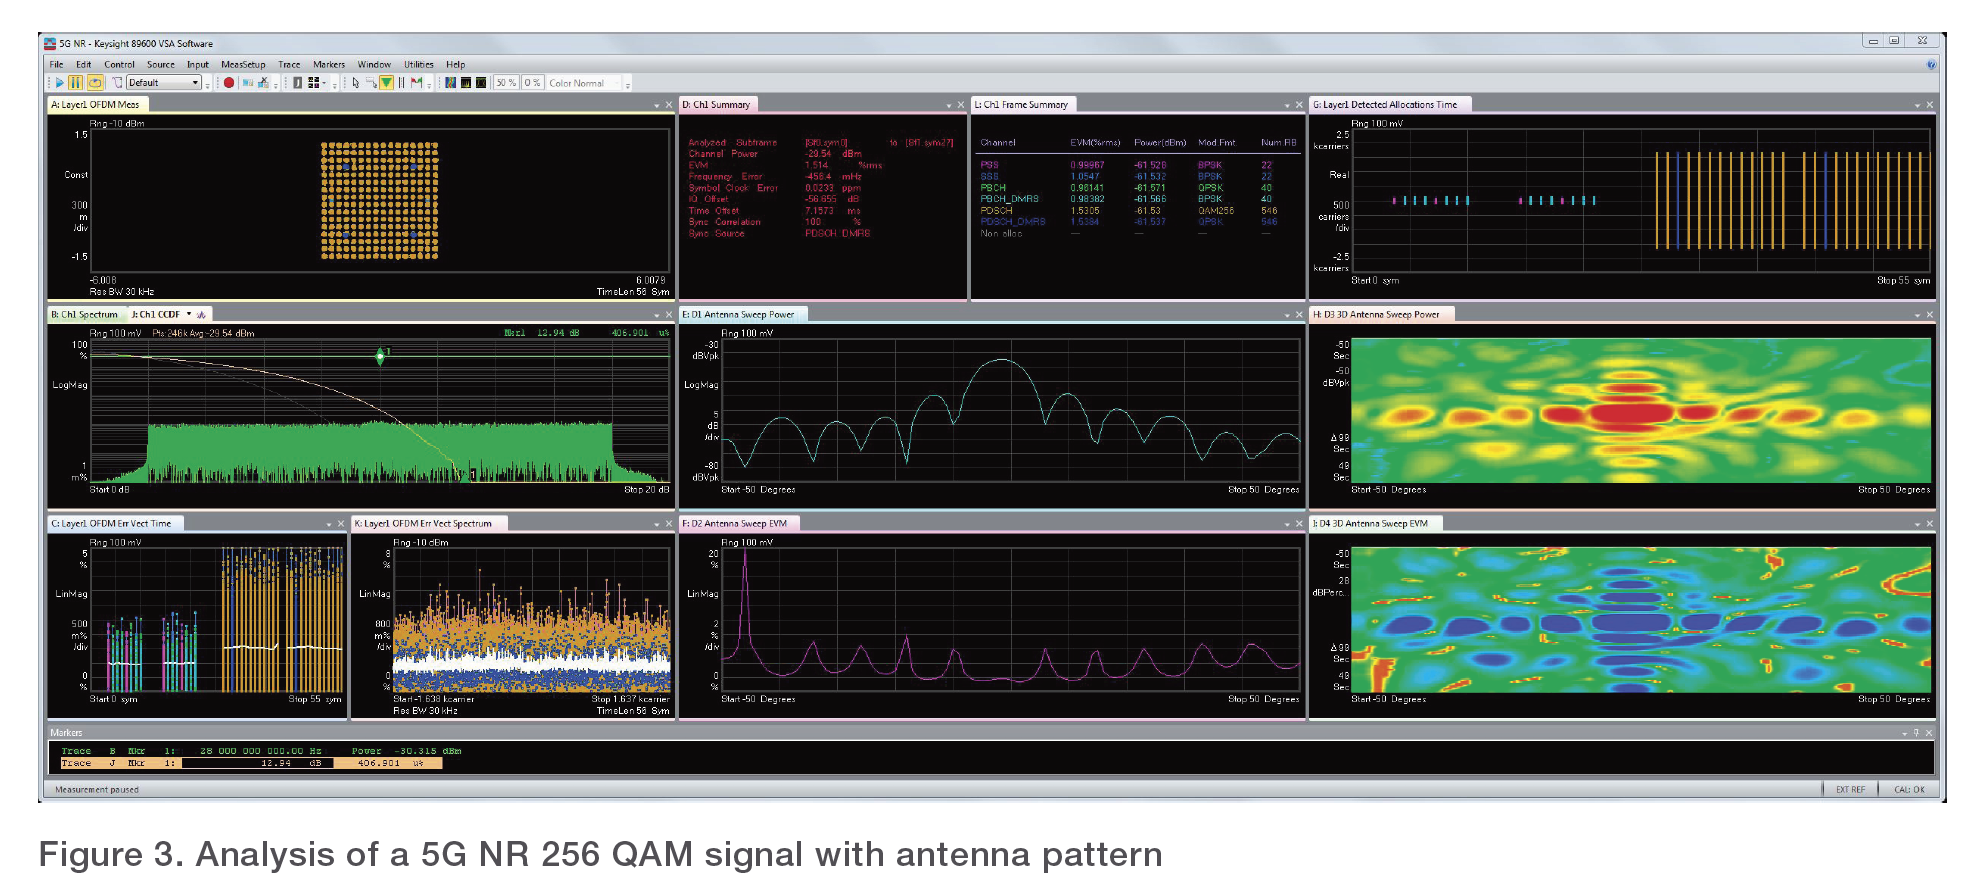 Figure 3. Analysis of a 5G NR 256 QAM signal with antenna pattern